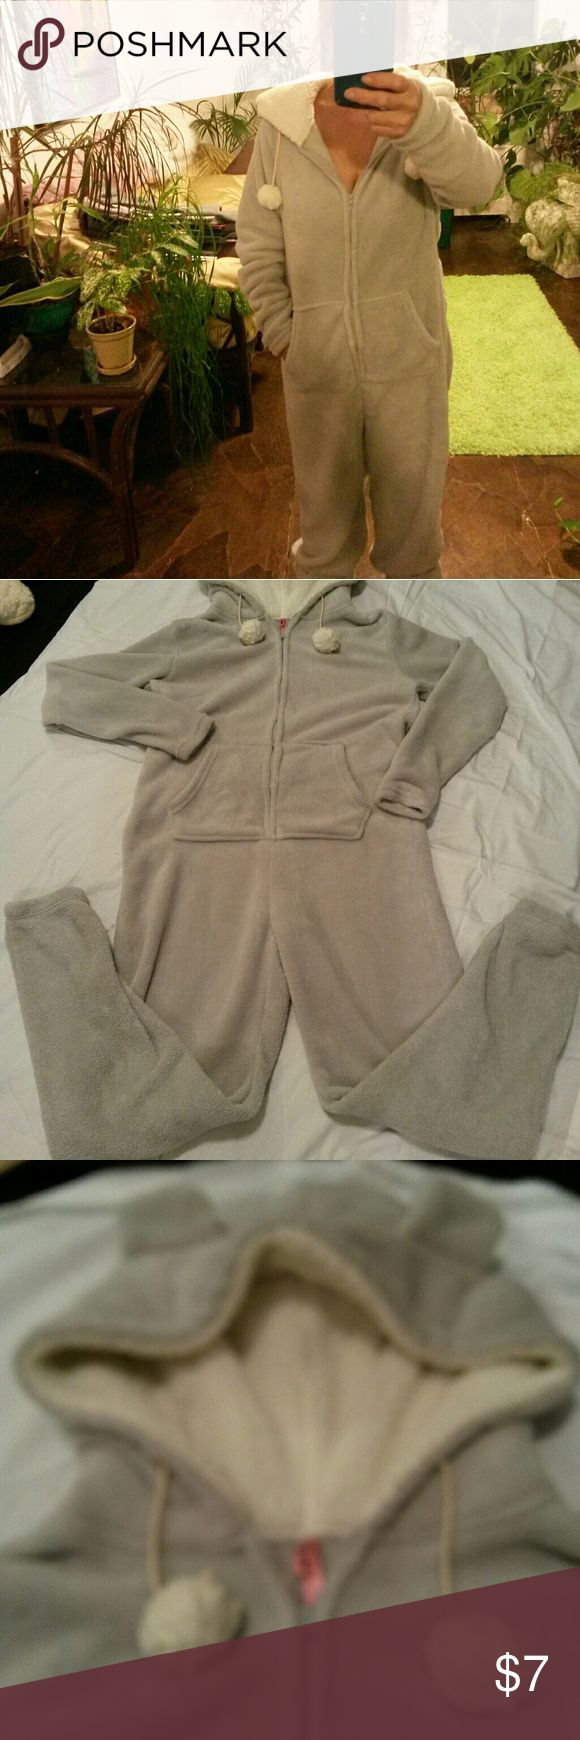 Super fluffy pj onesie Soft, fluffy and warm. Zips up front. Hooded with cute ears, drawstring for hood has pom pom balls on ends. Pockets. Light marks on right chest area. (Looks like something ran when washed-see last pic) Rue 21 Intimates & Sleepwear Pajamas